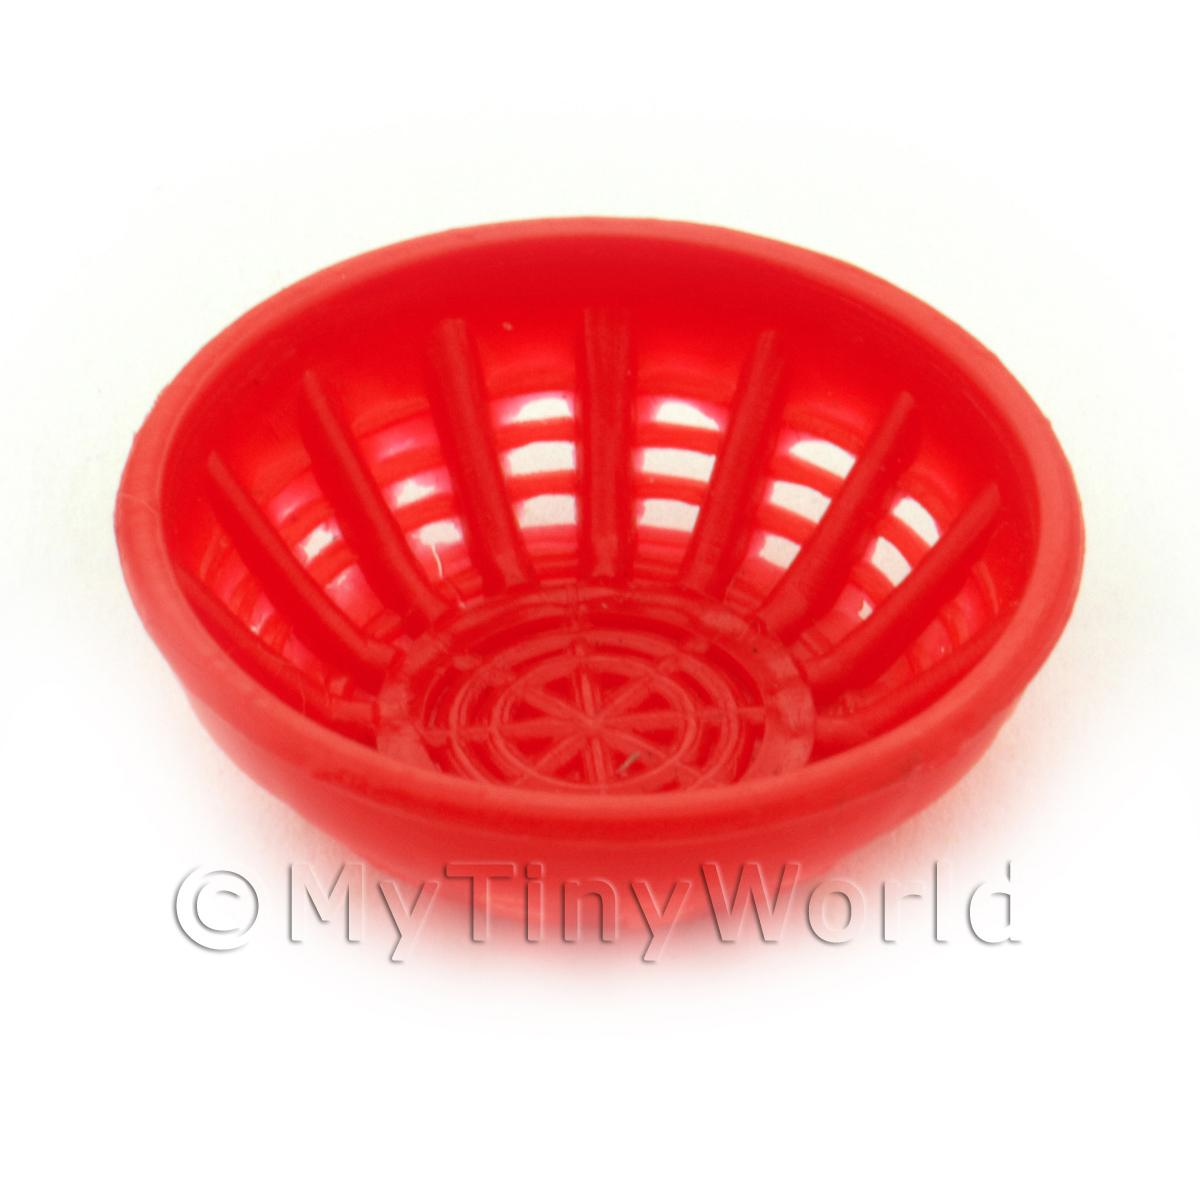 Large Dark Red Dolls House Miniature Plastic Bowl